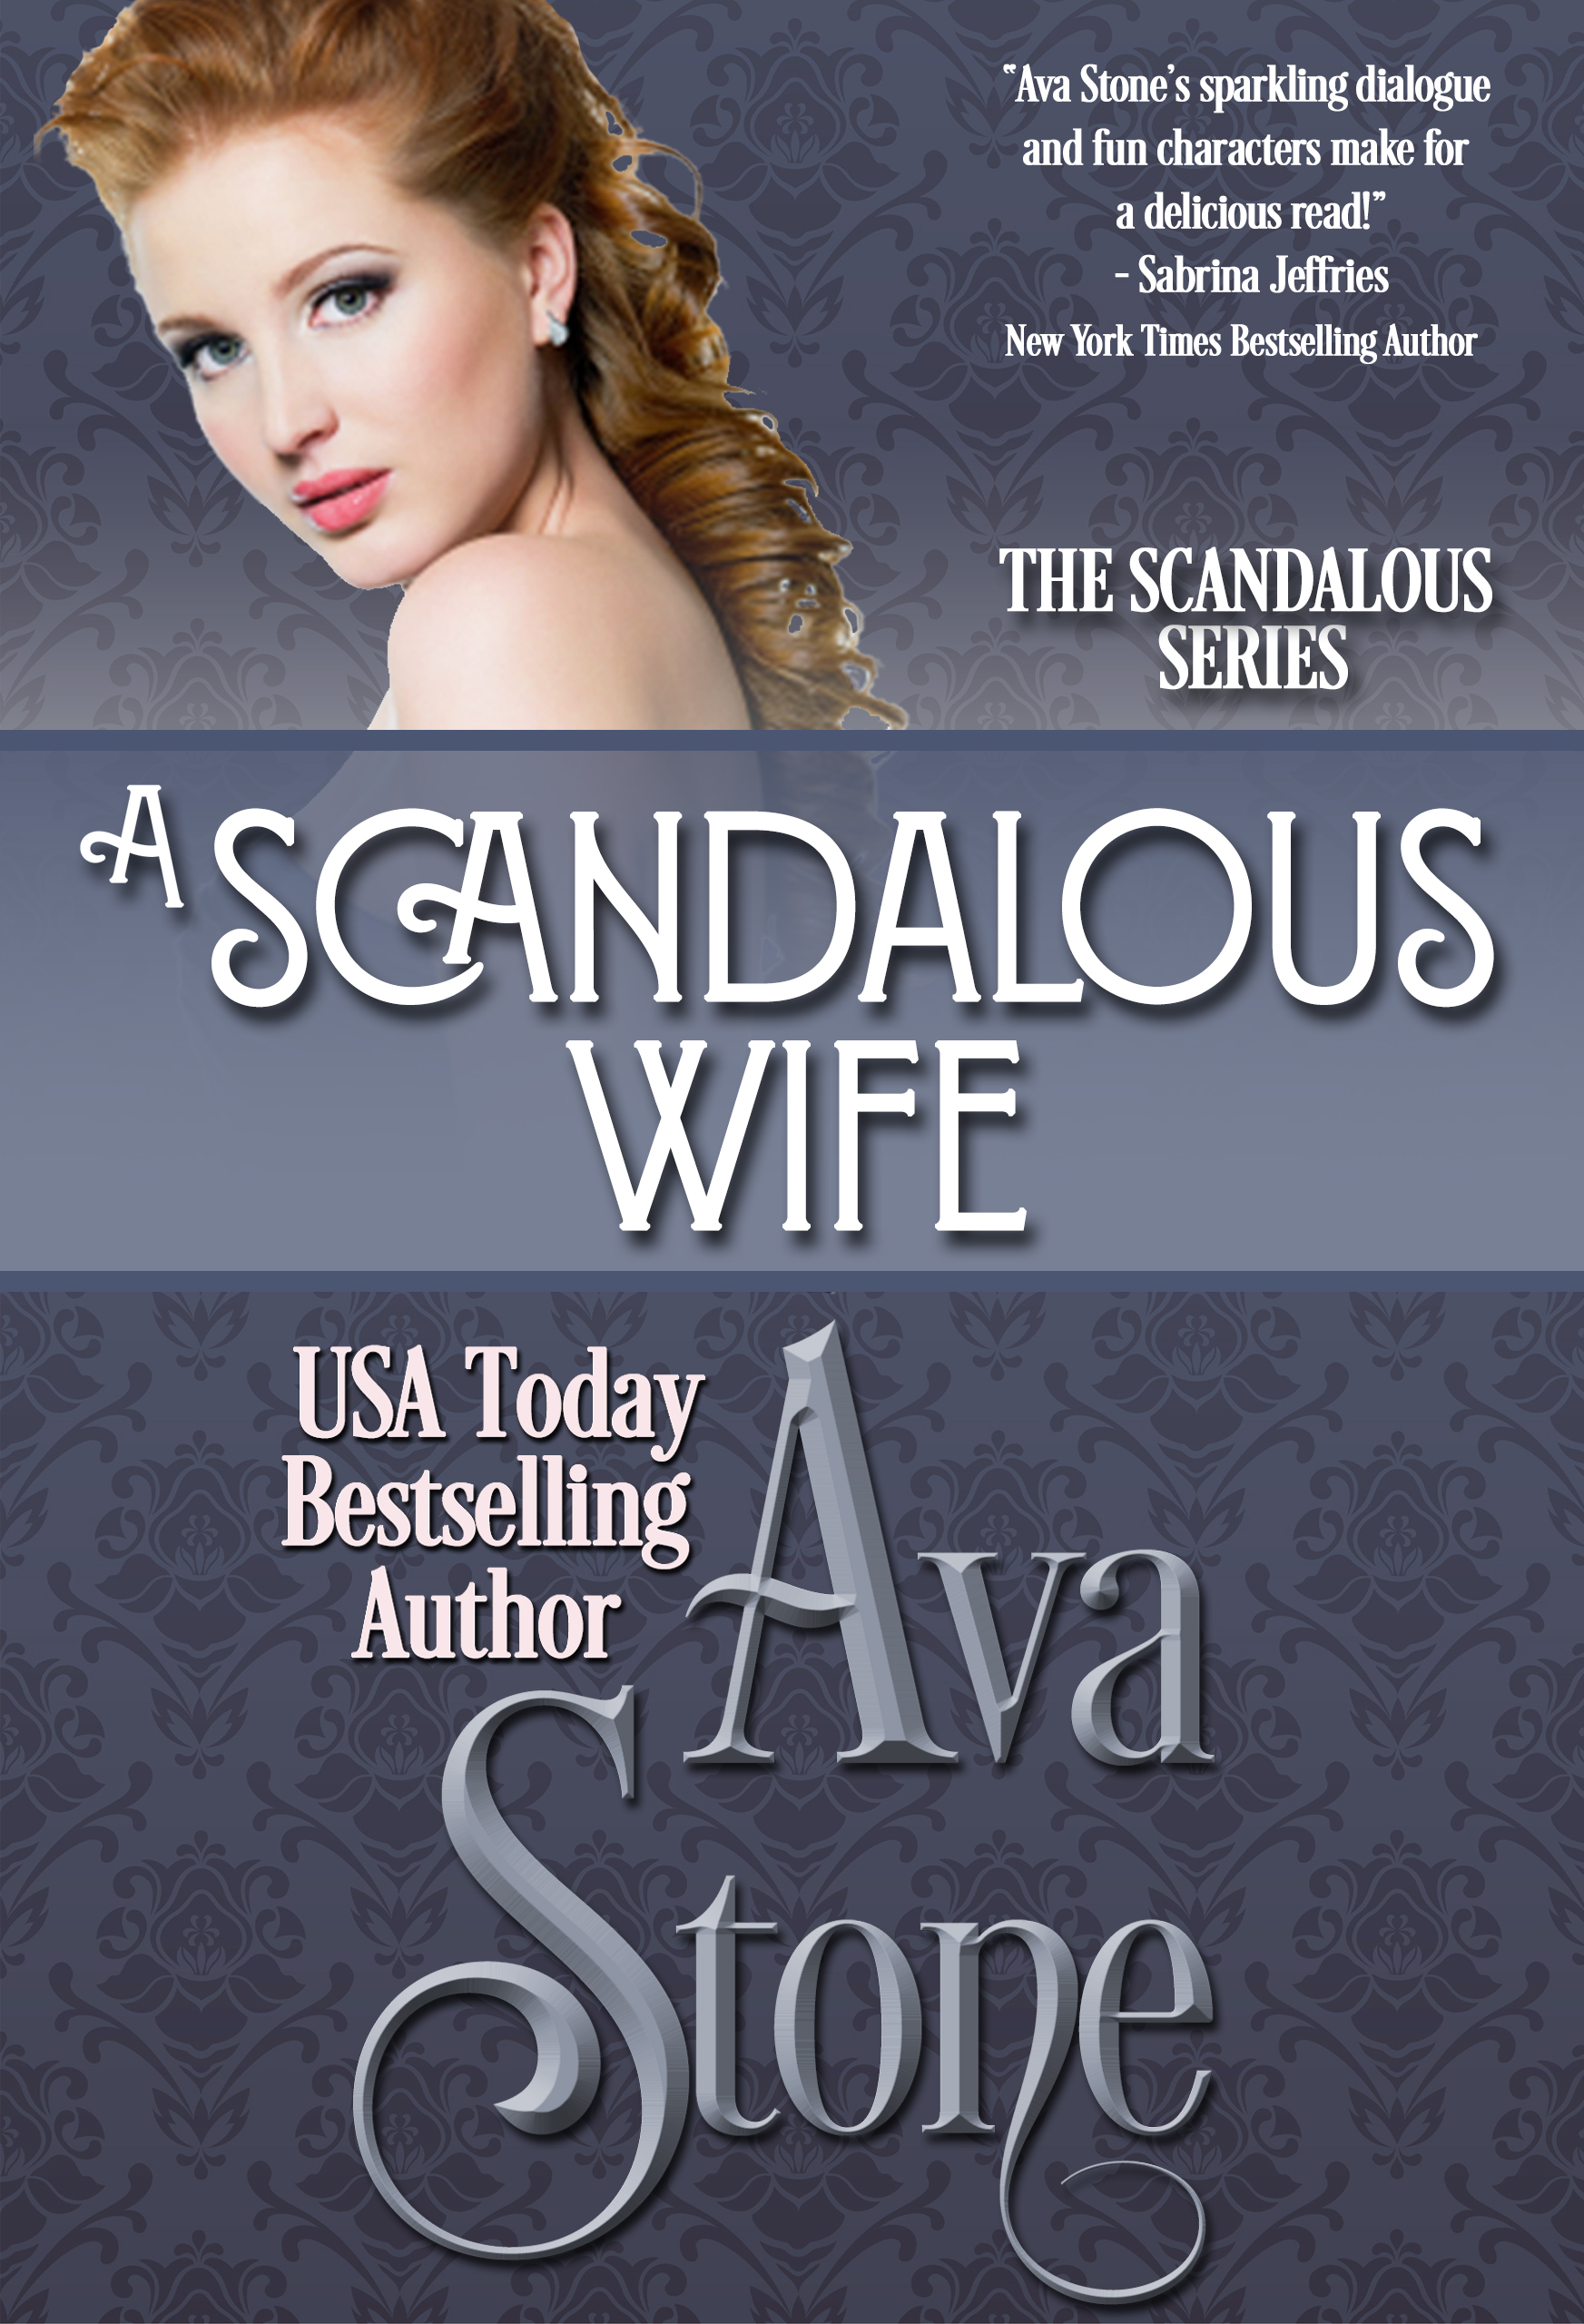 A Scandalous Wife (sst-cdxxviii)